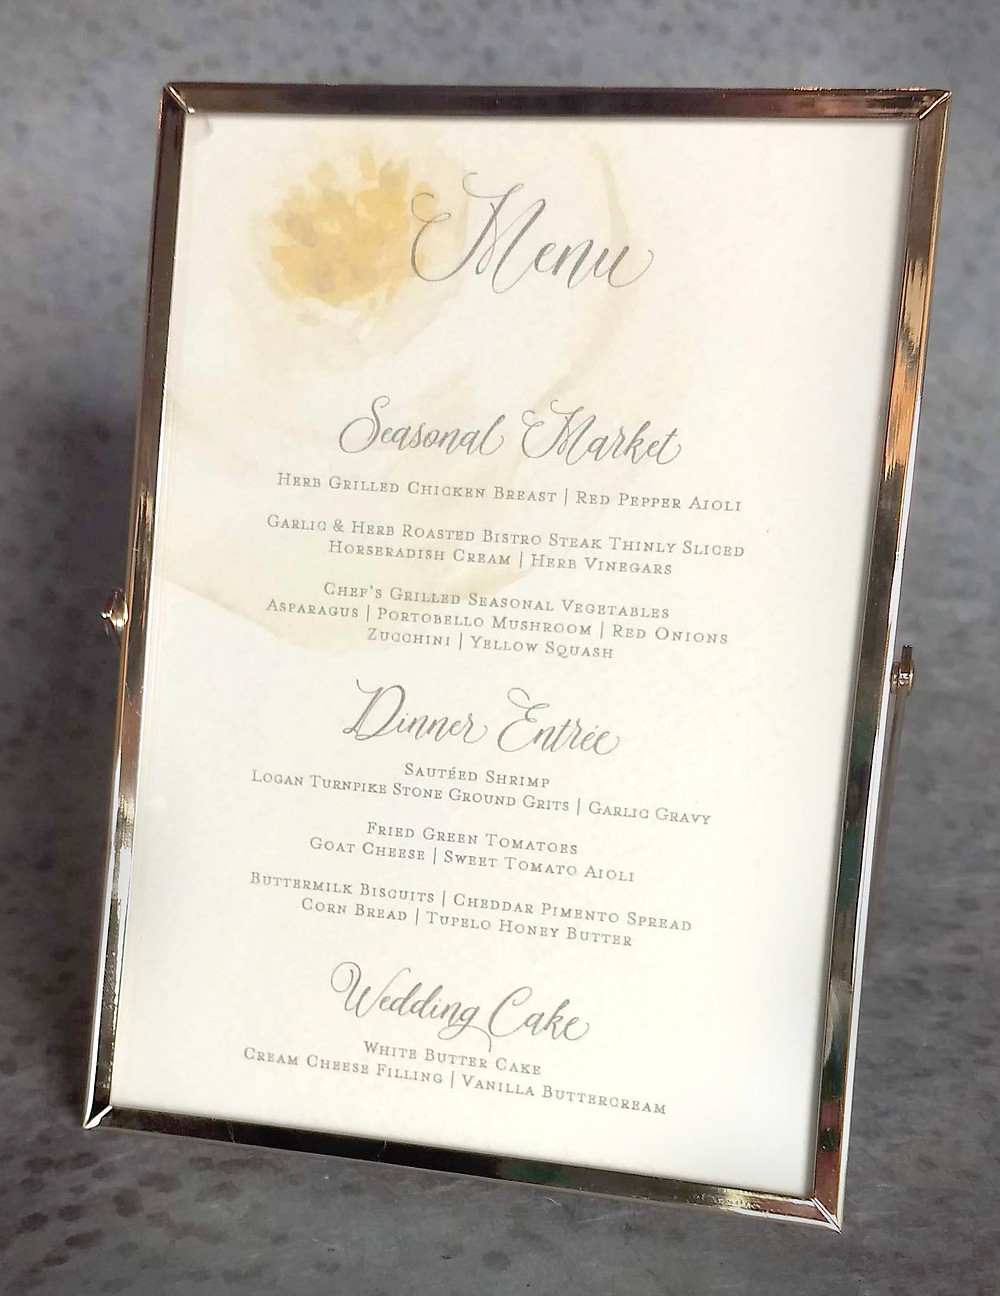 Use a larger framed menu for each table of your wedding to tell your guests their dinner options!